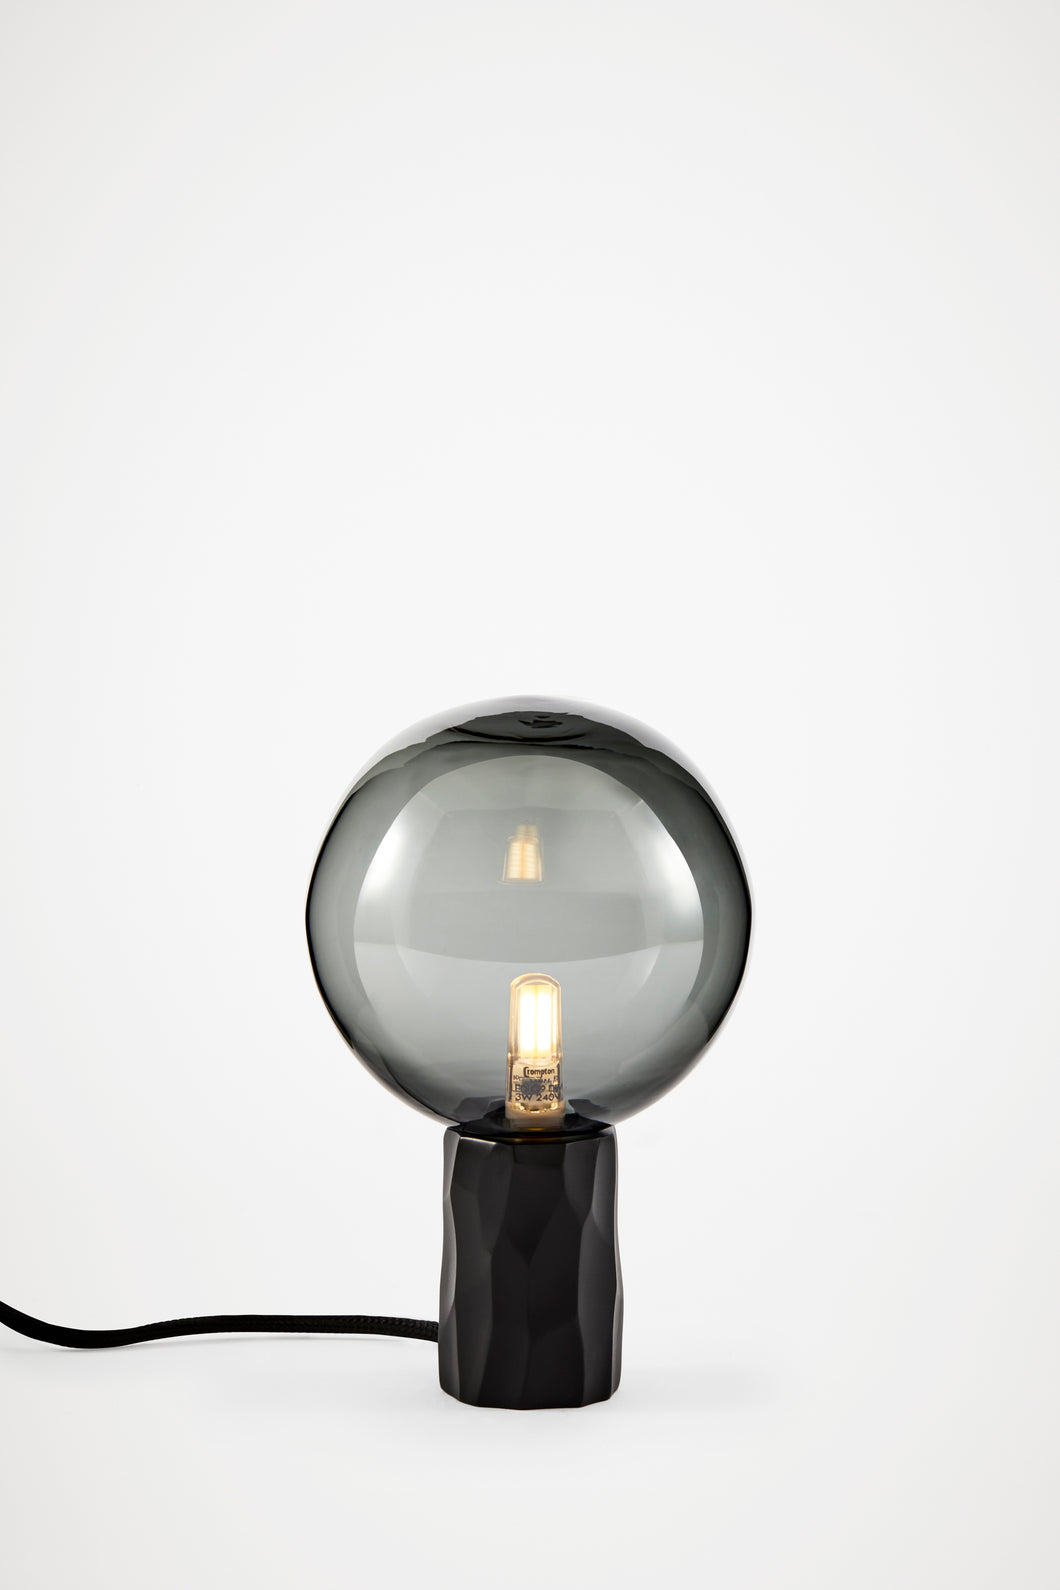 Kyoto Table lamp Black with smoked glass